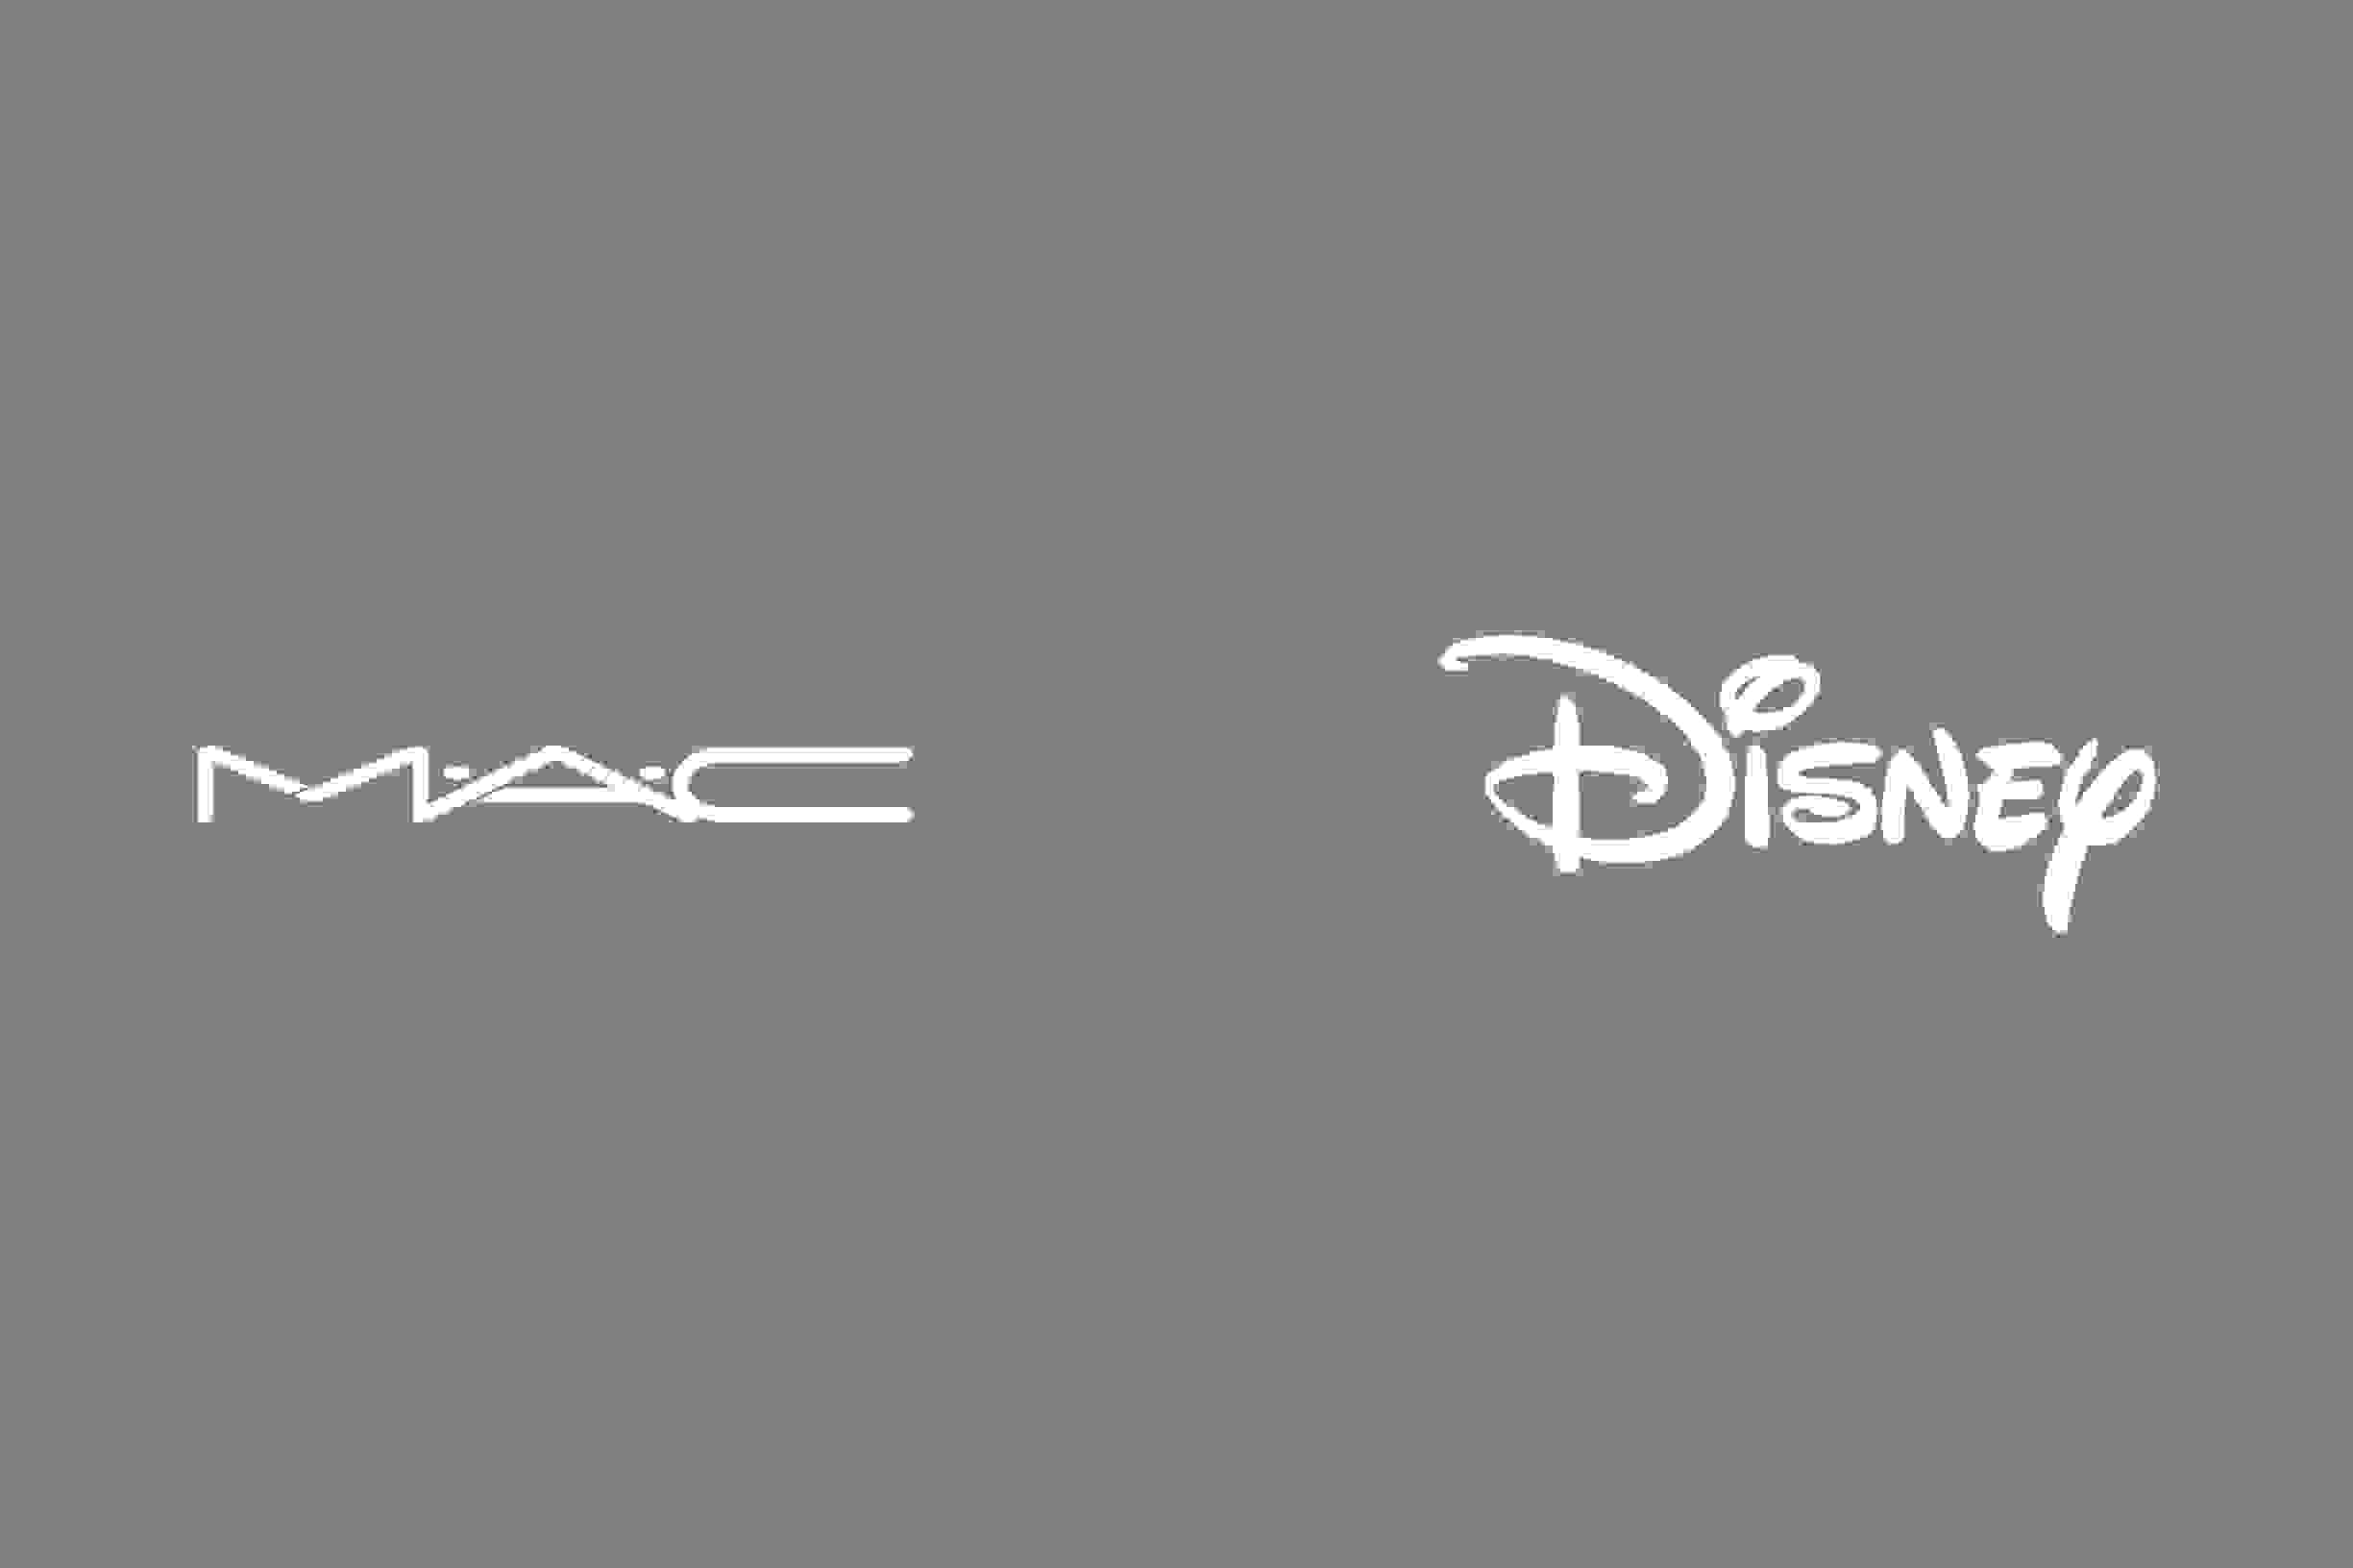 Mac and Disney logo side by side